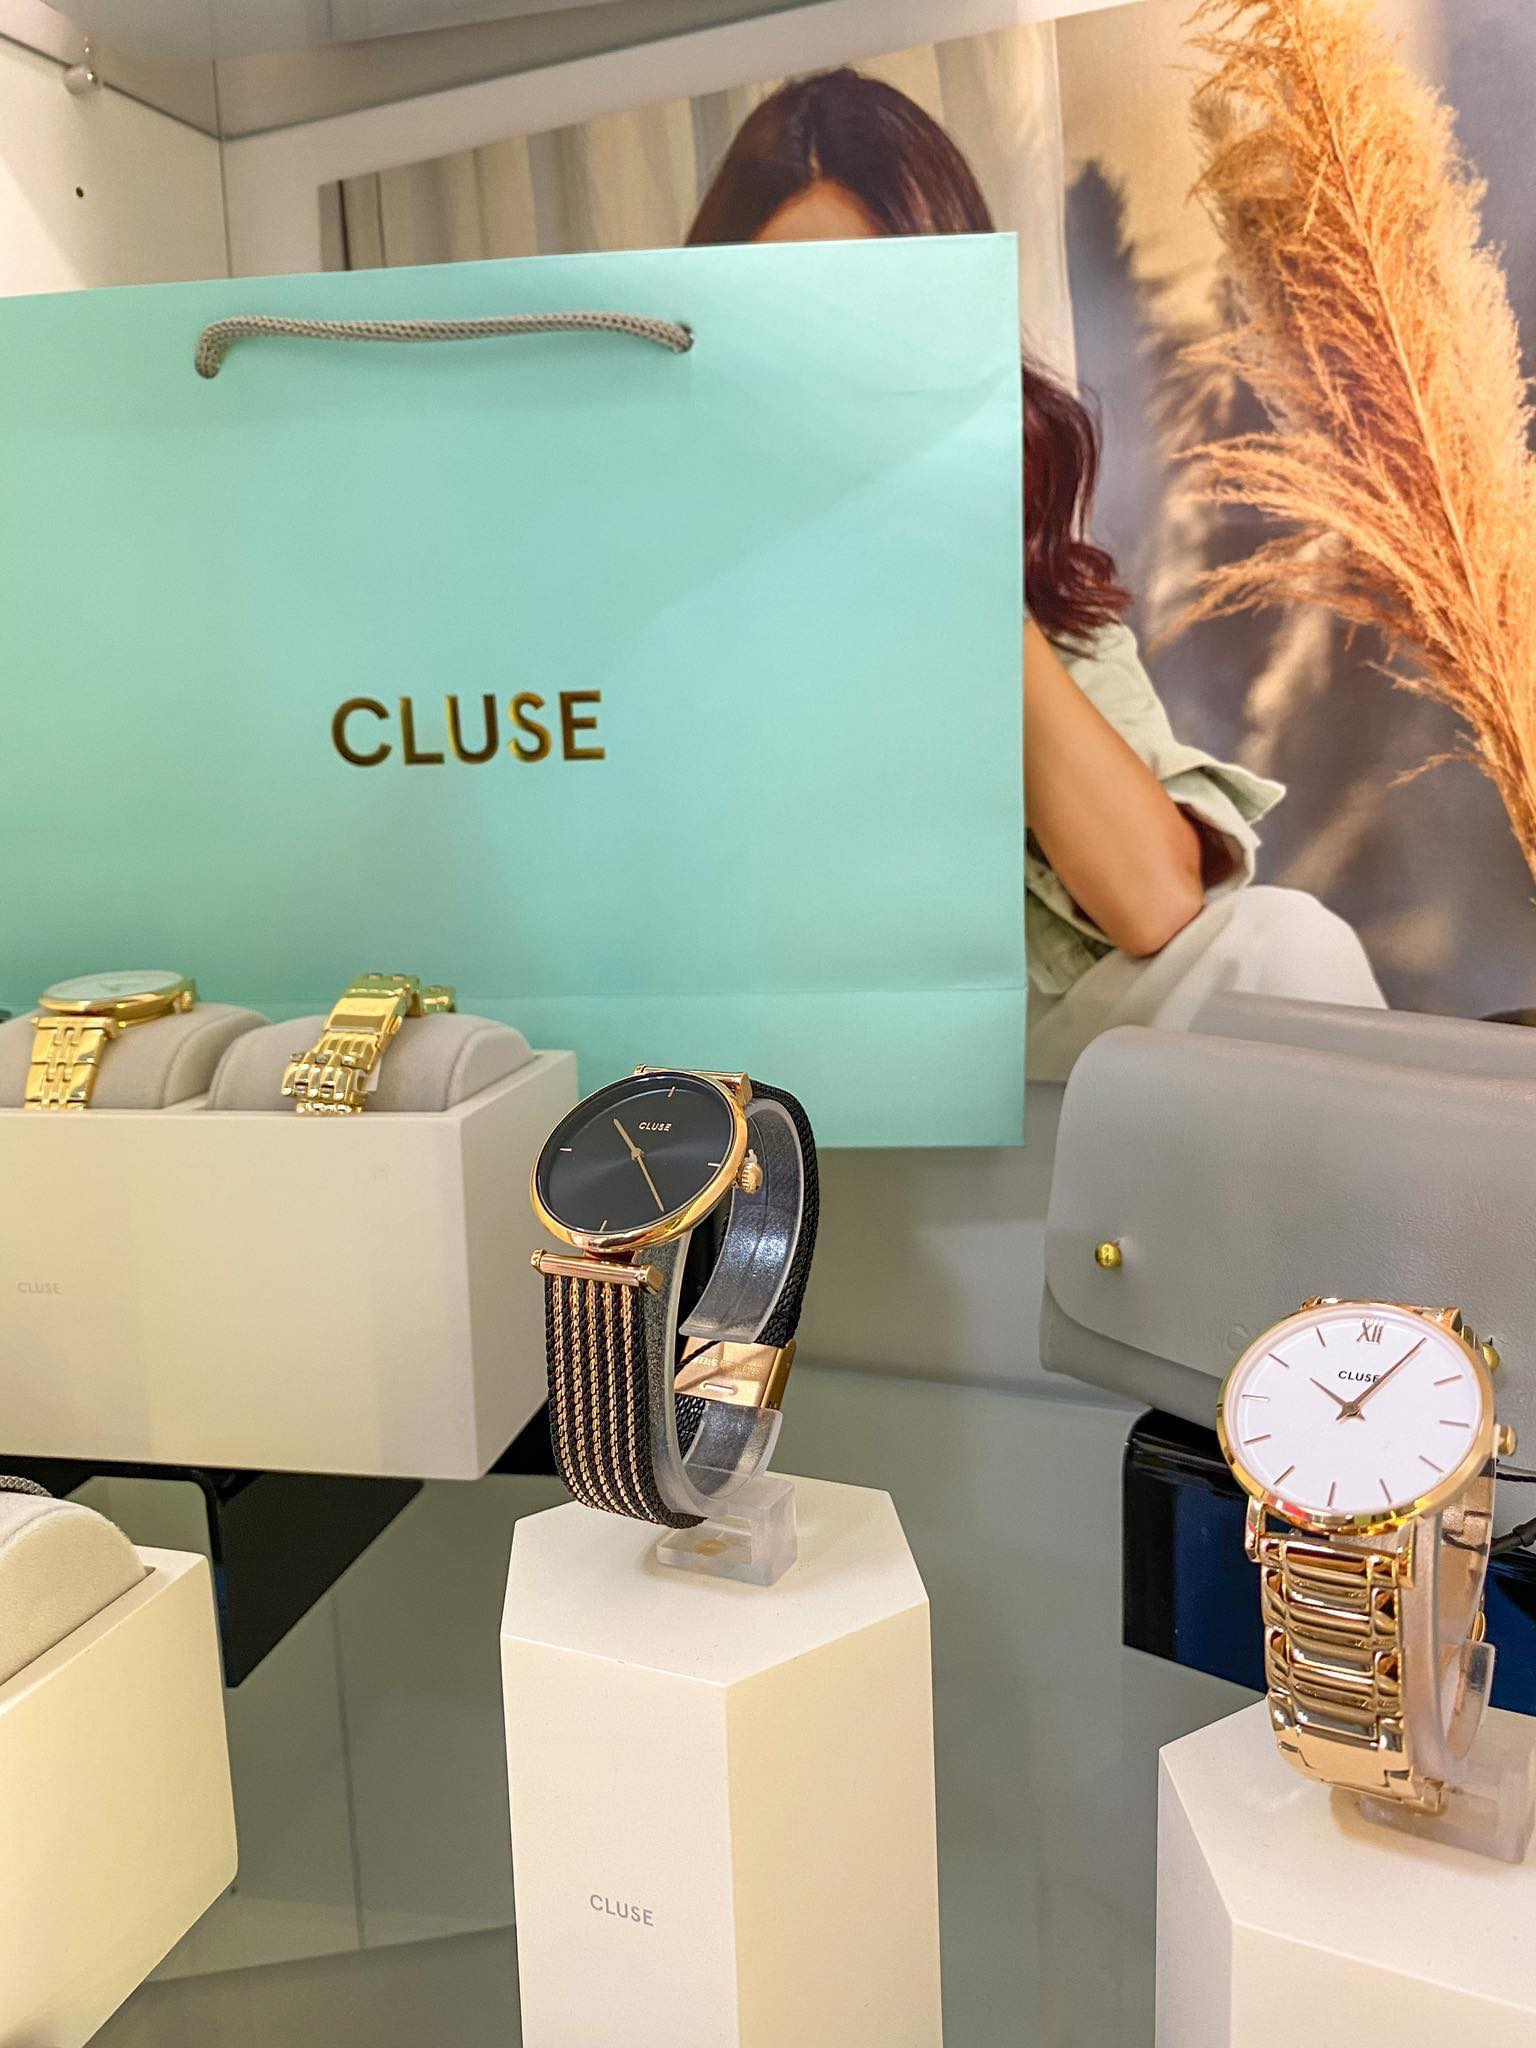 Cluse wtaches available here at Listowel Garden Centre and Cafe, jeweller